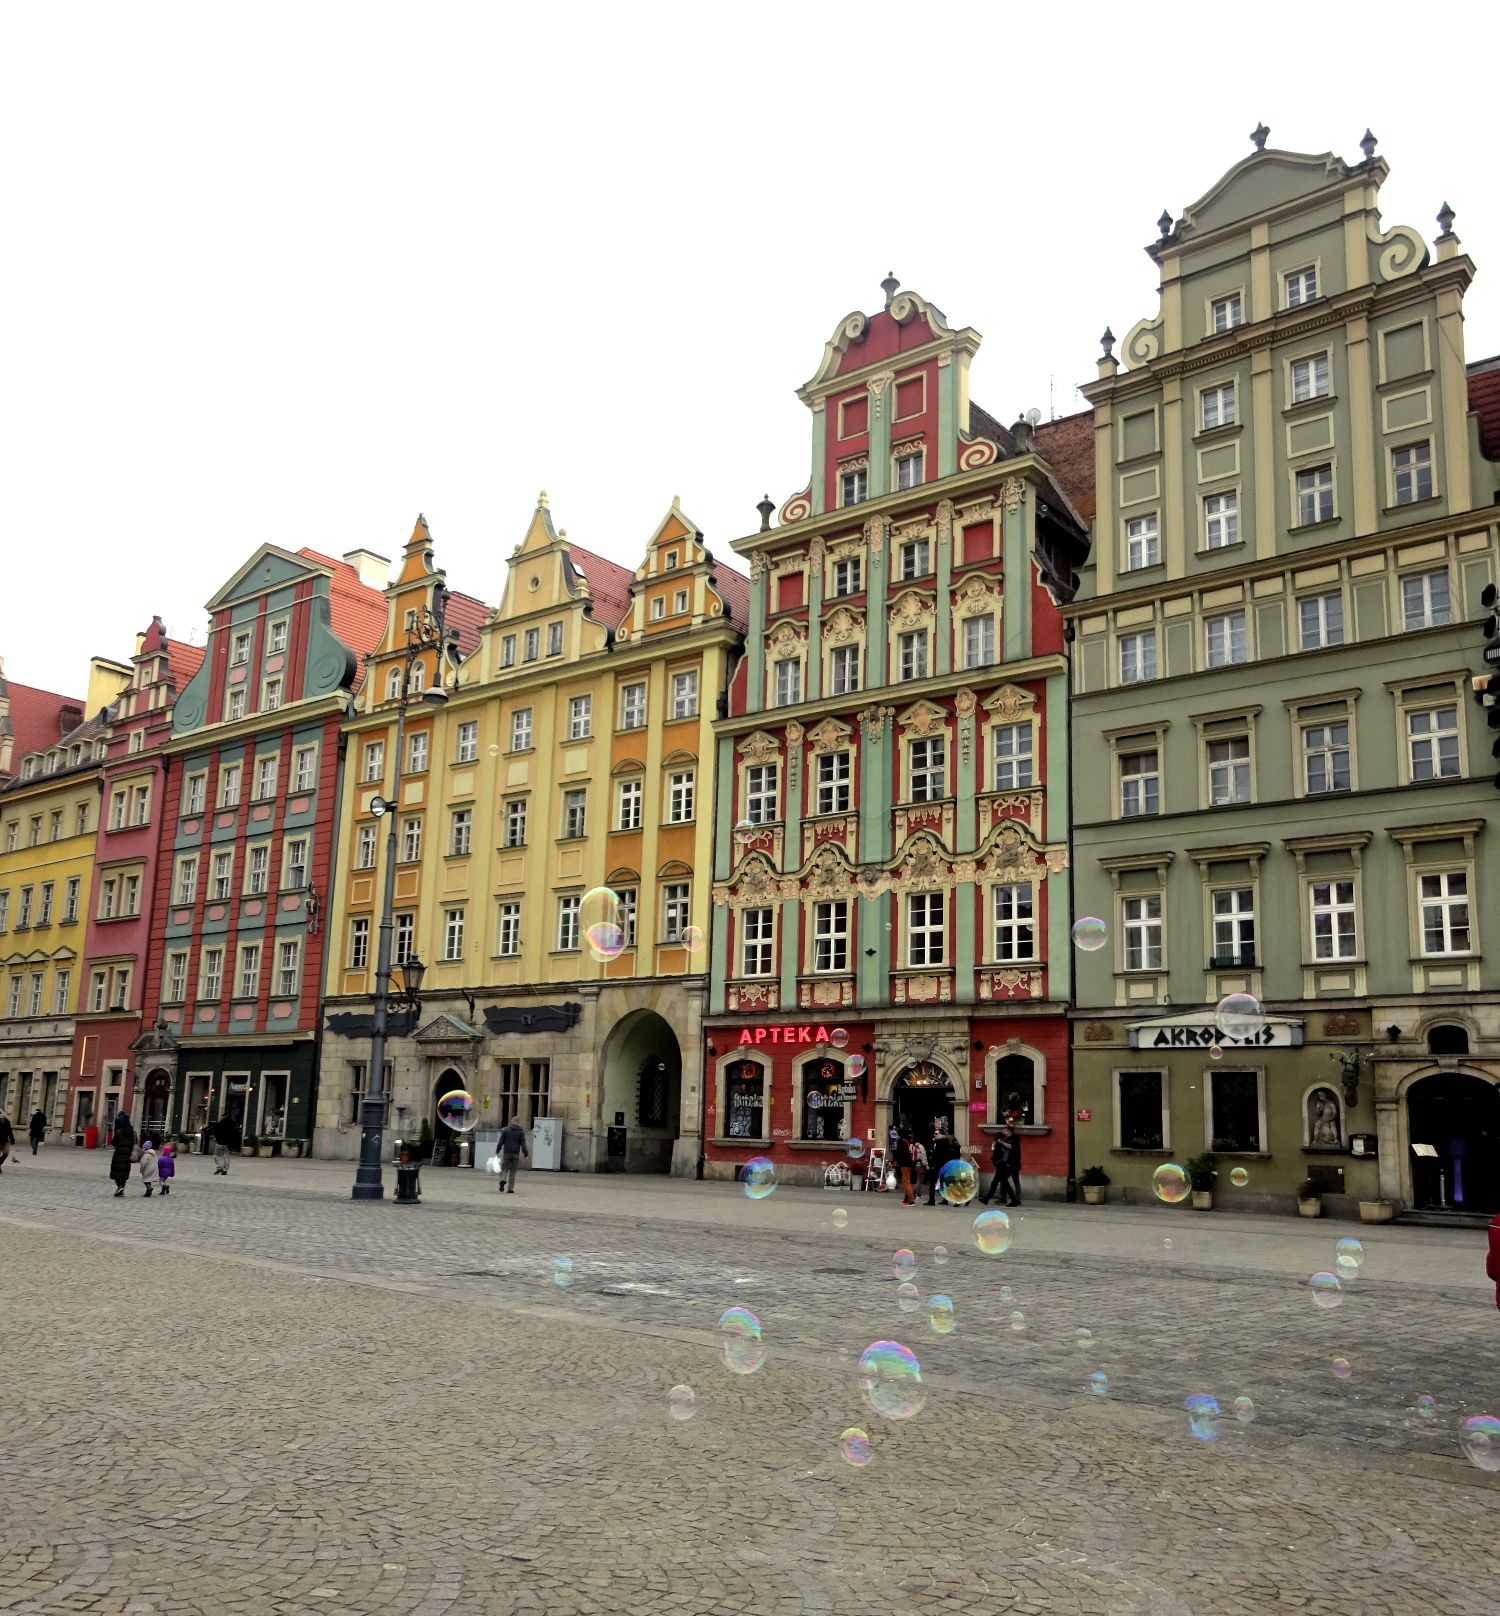 Wroclaw, you're beautiful!